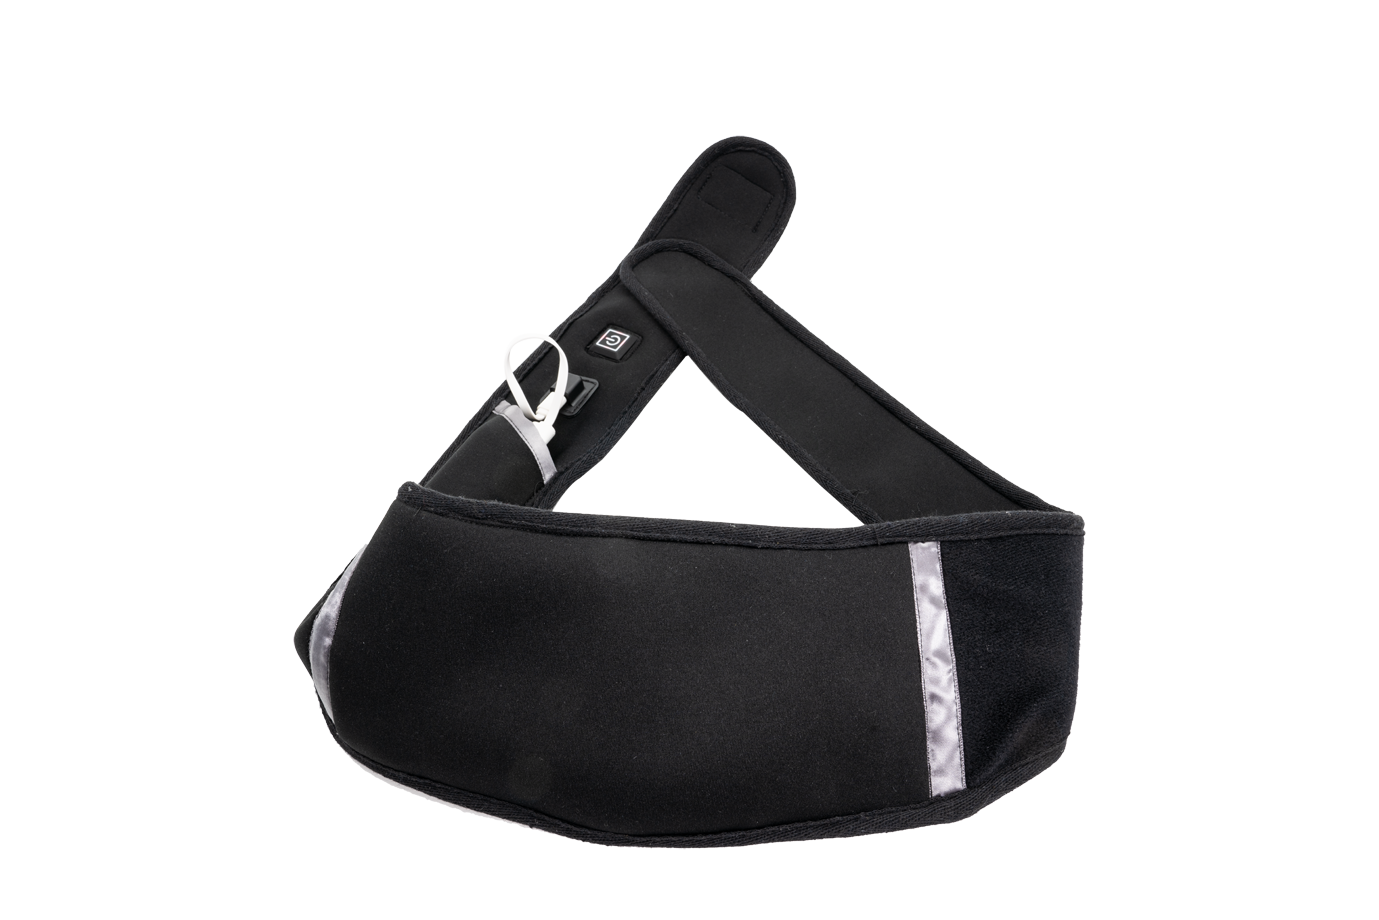 1807 Far infrared ray kidney support belt